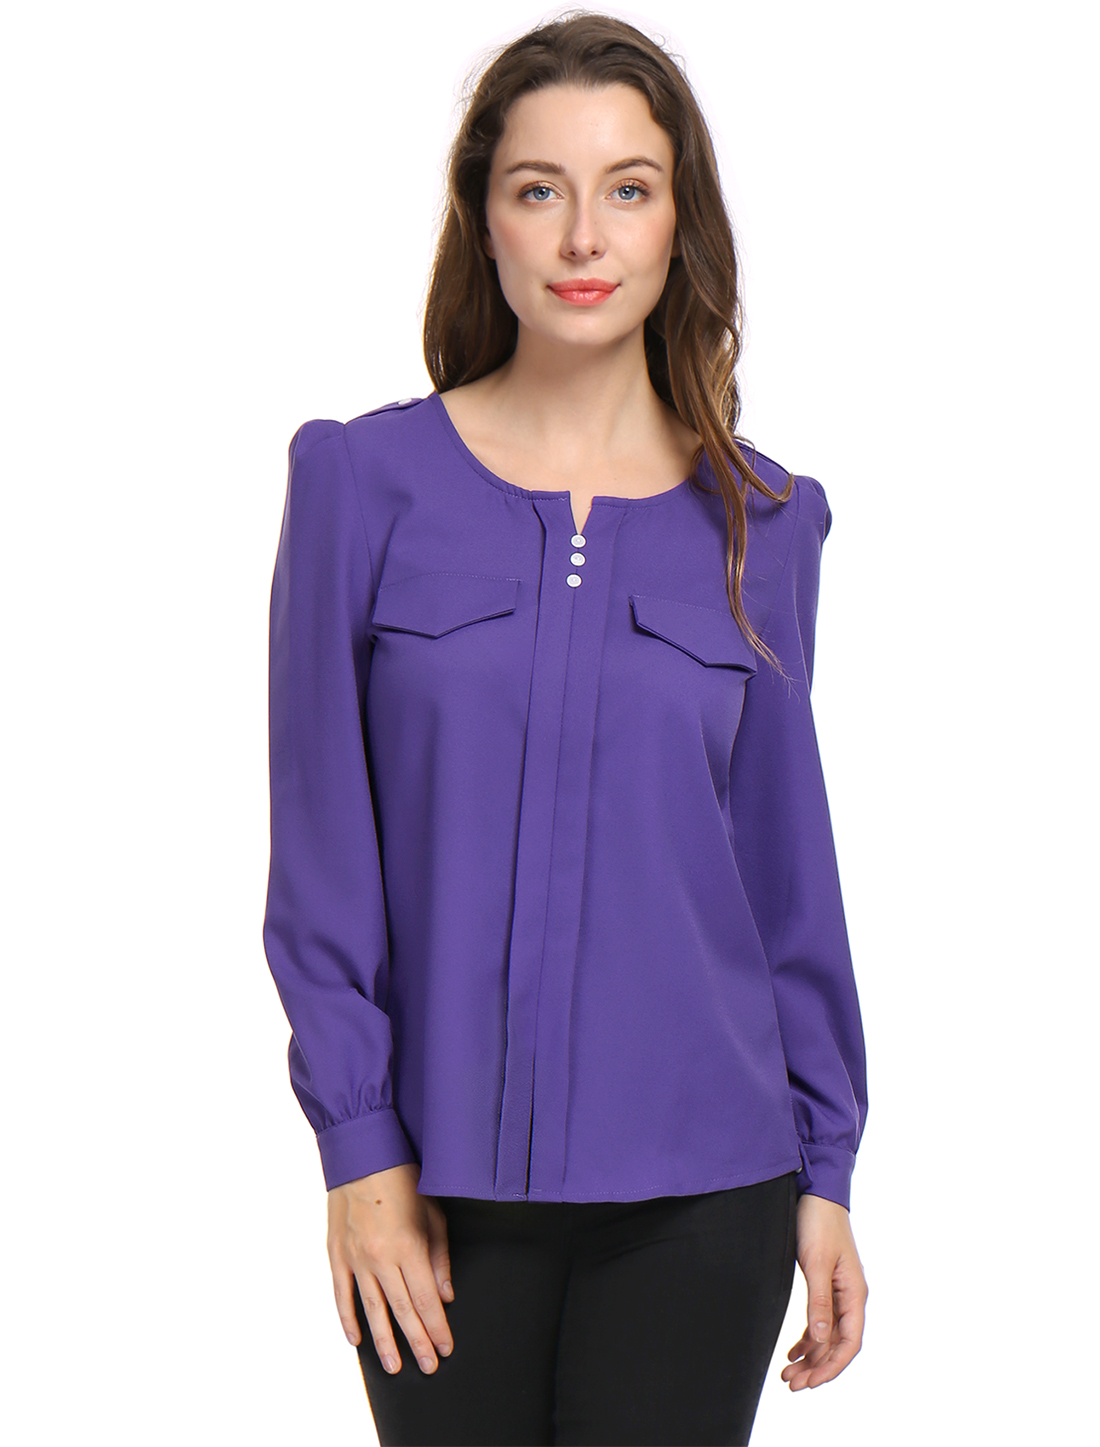 Women Buttons Decor Decorative Pockets Ruched Blouse Purple S